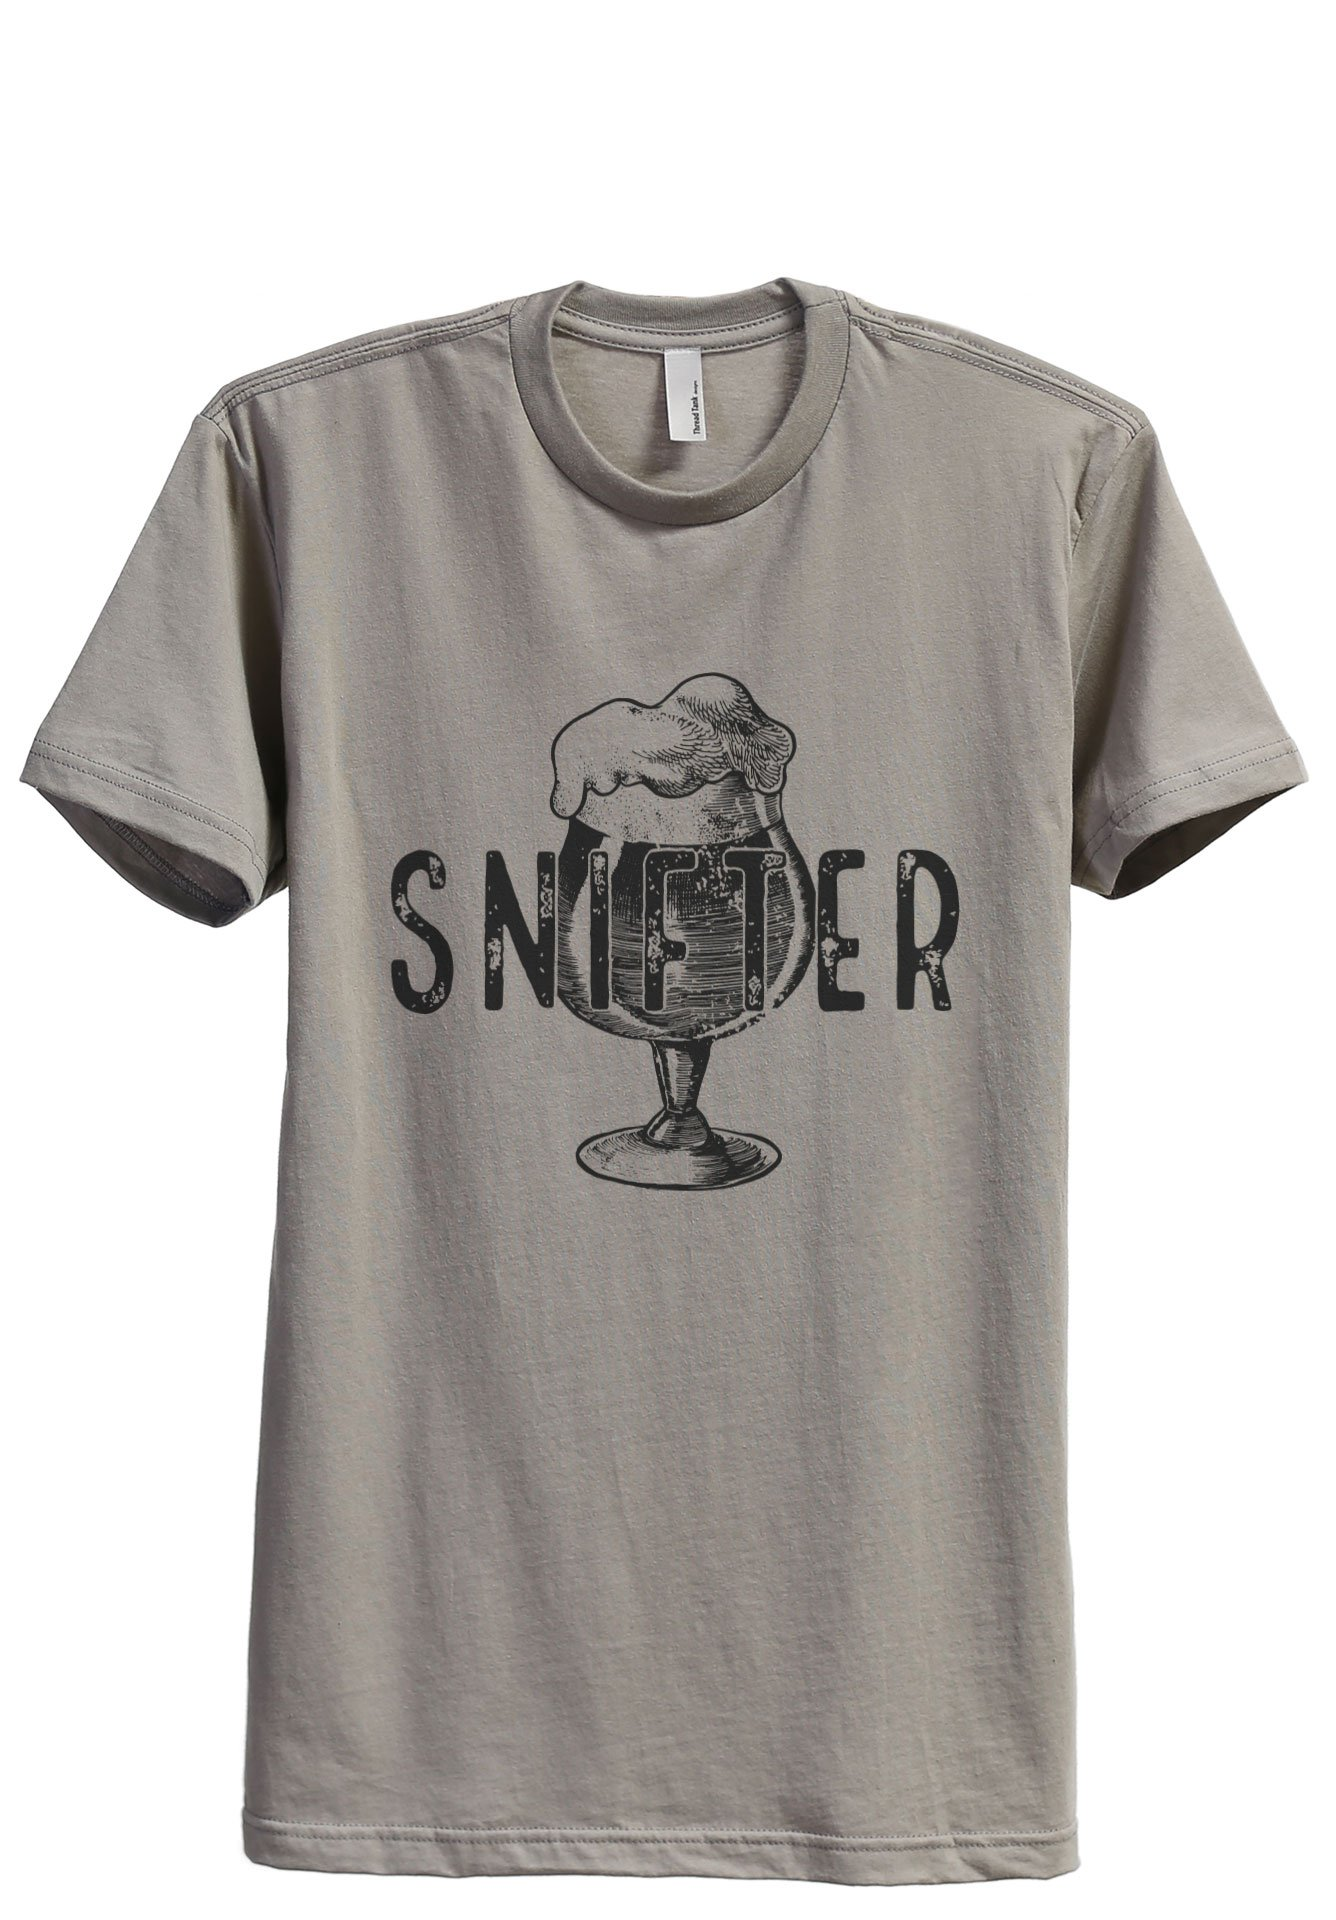 Thread Tank Snifter Glass Sketch Men's Modern Fit T-Shirt Printed Graphic Tee Military Grey Large